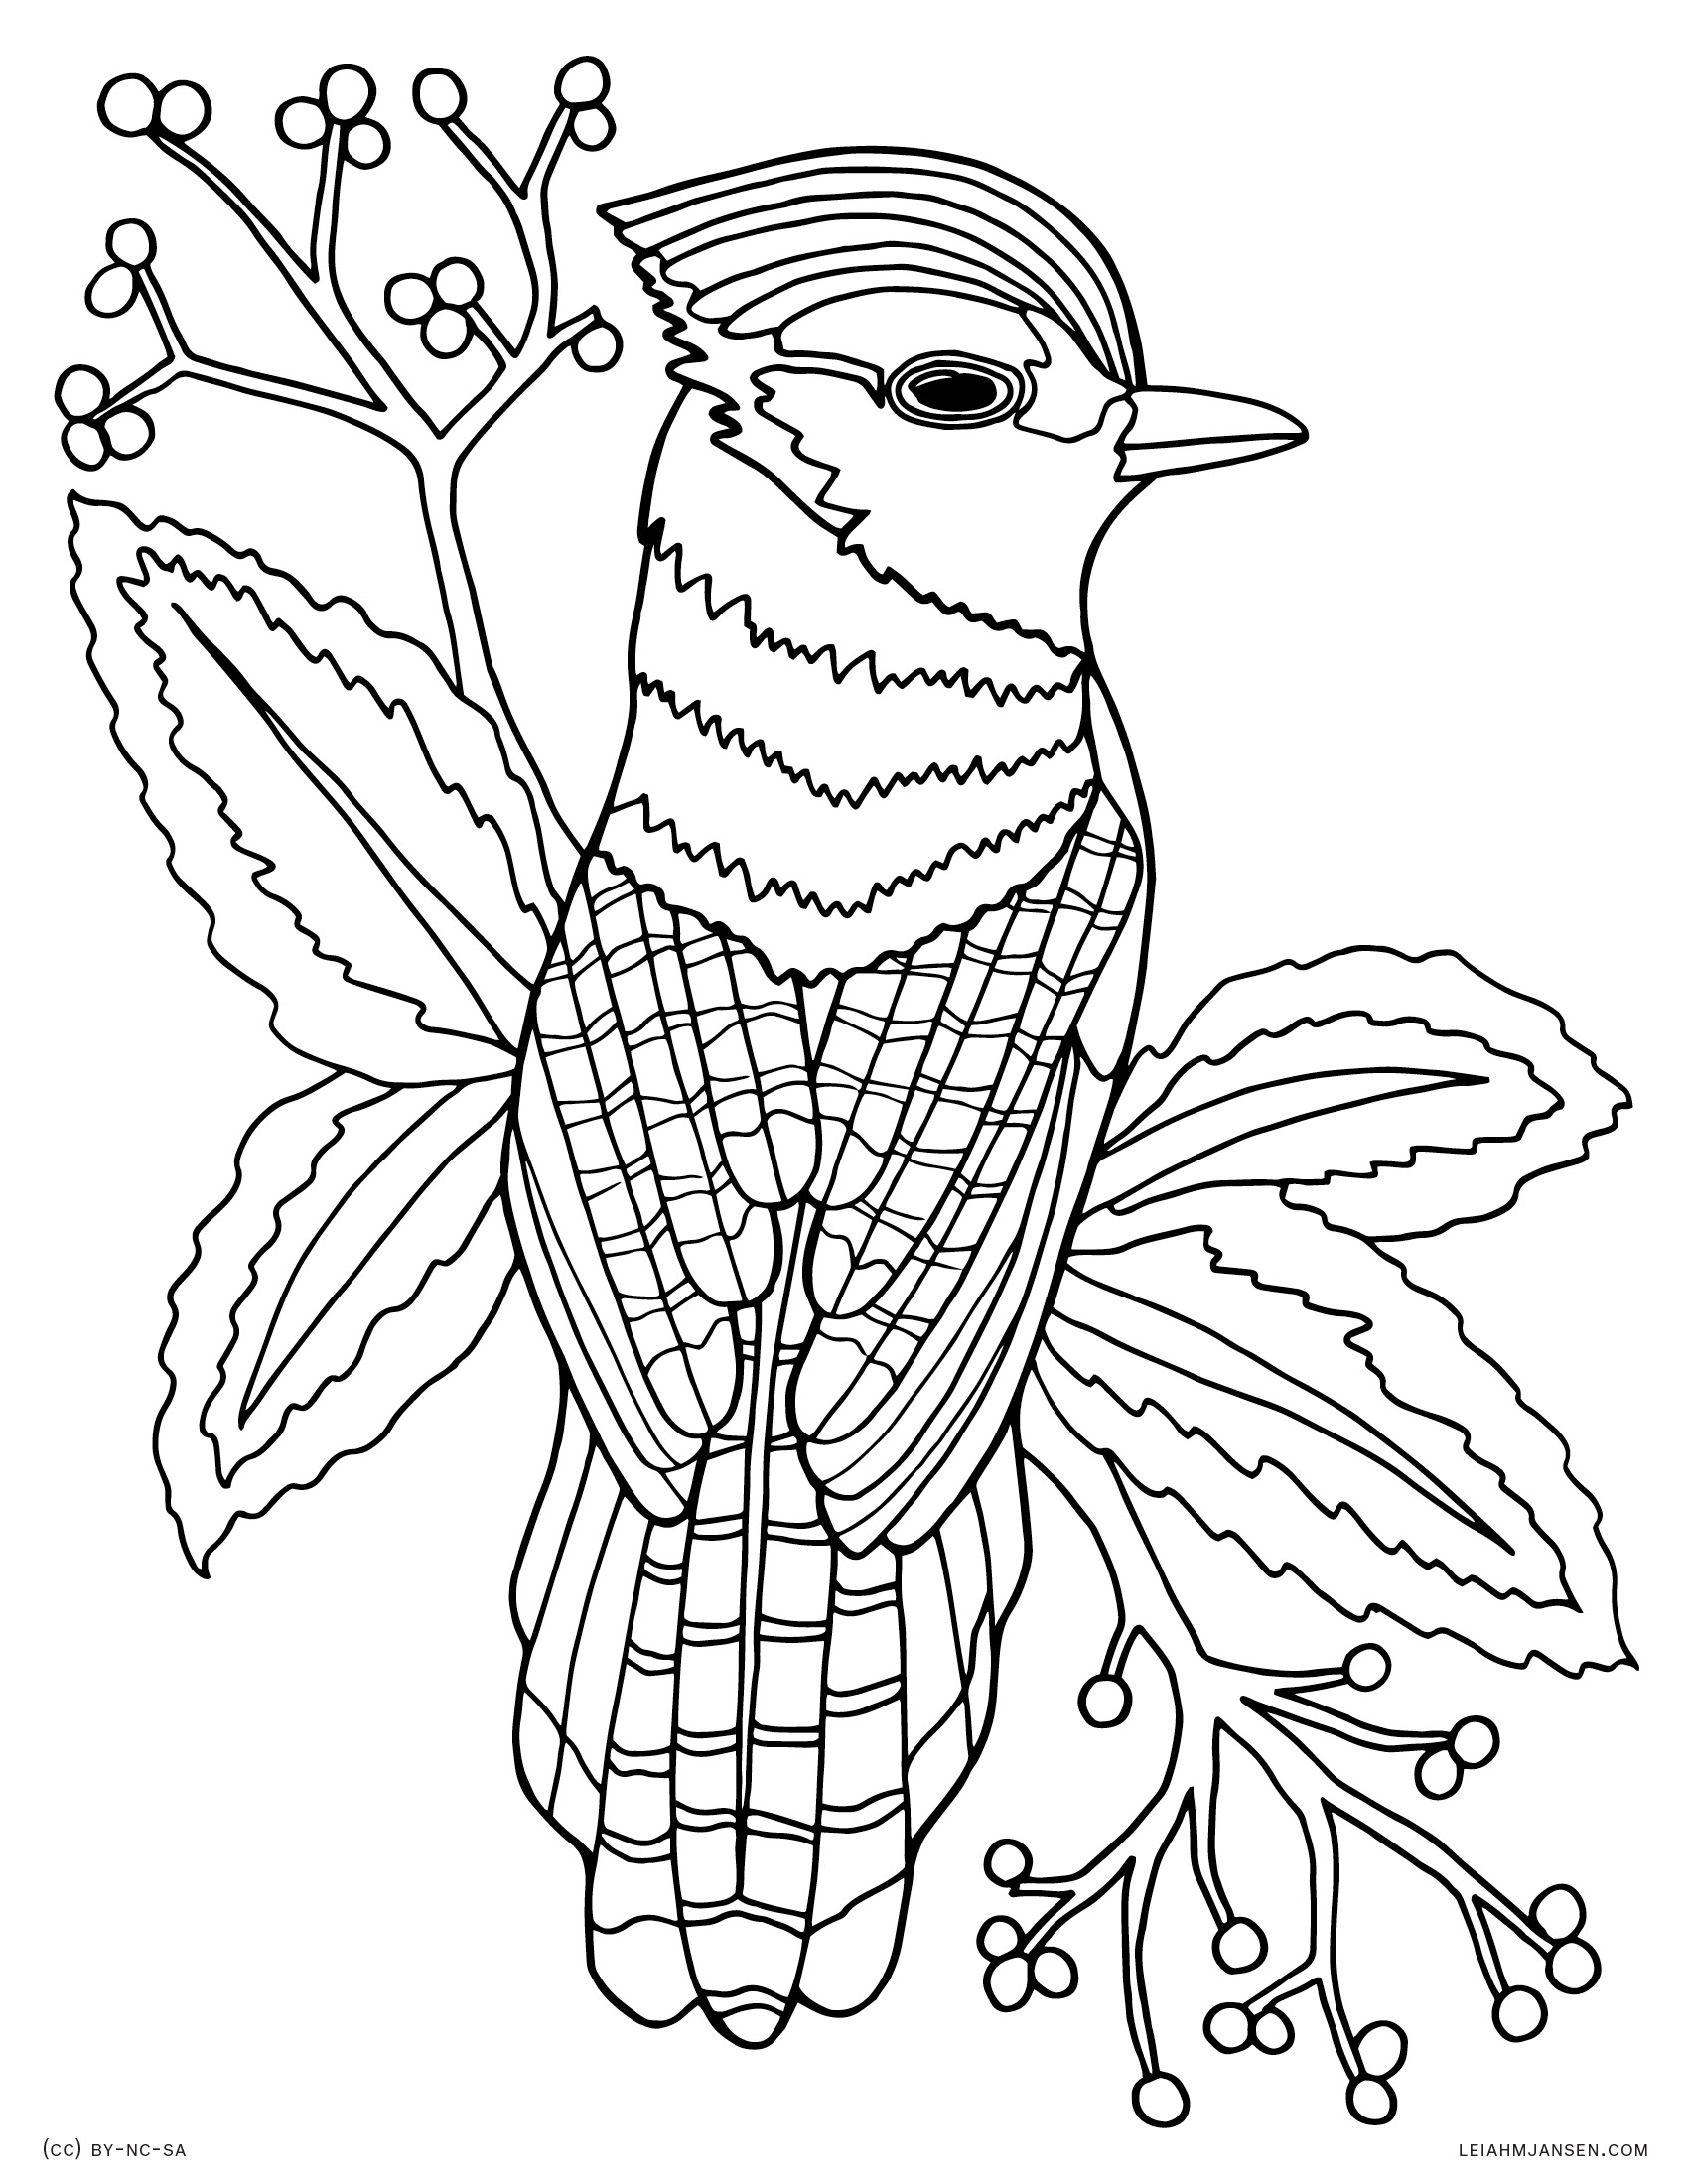 Detailed Animal Coloring Pages For Adults at GetDrawings.com | Free ...